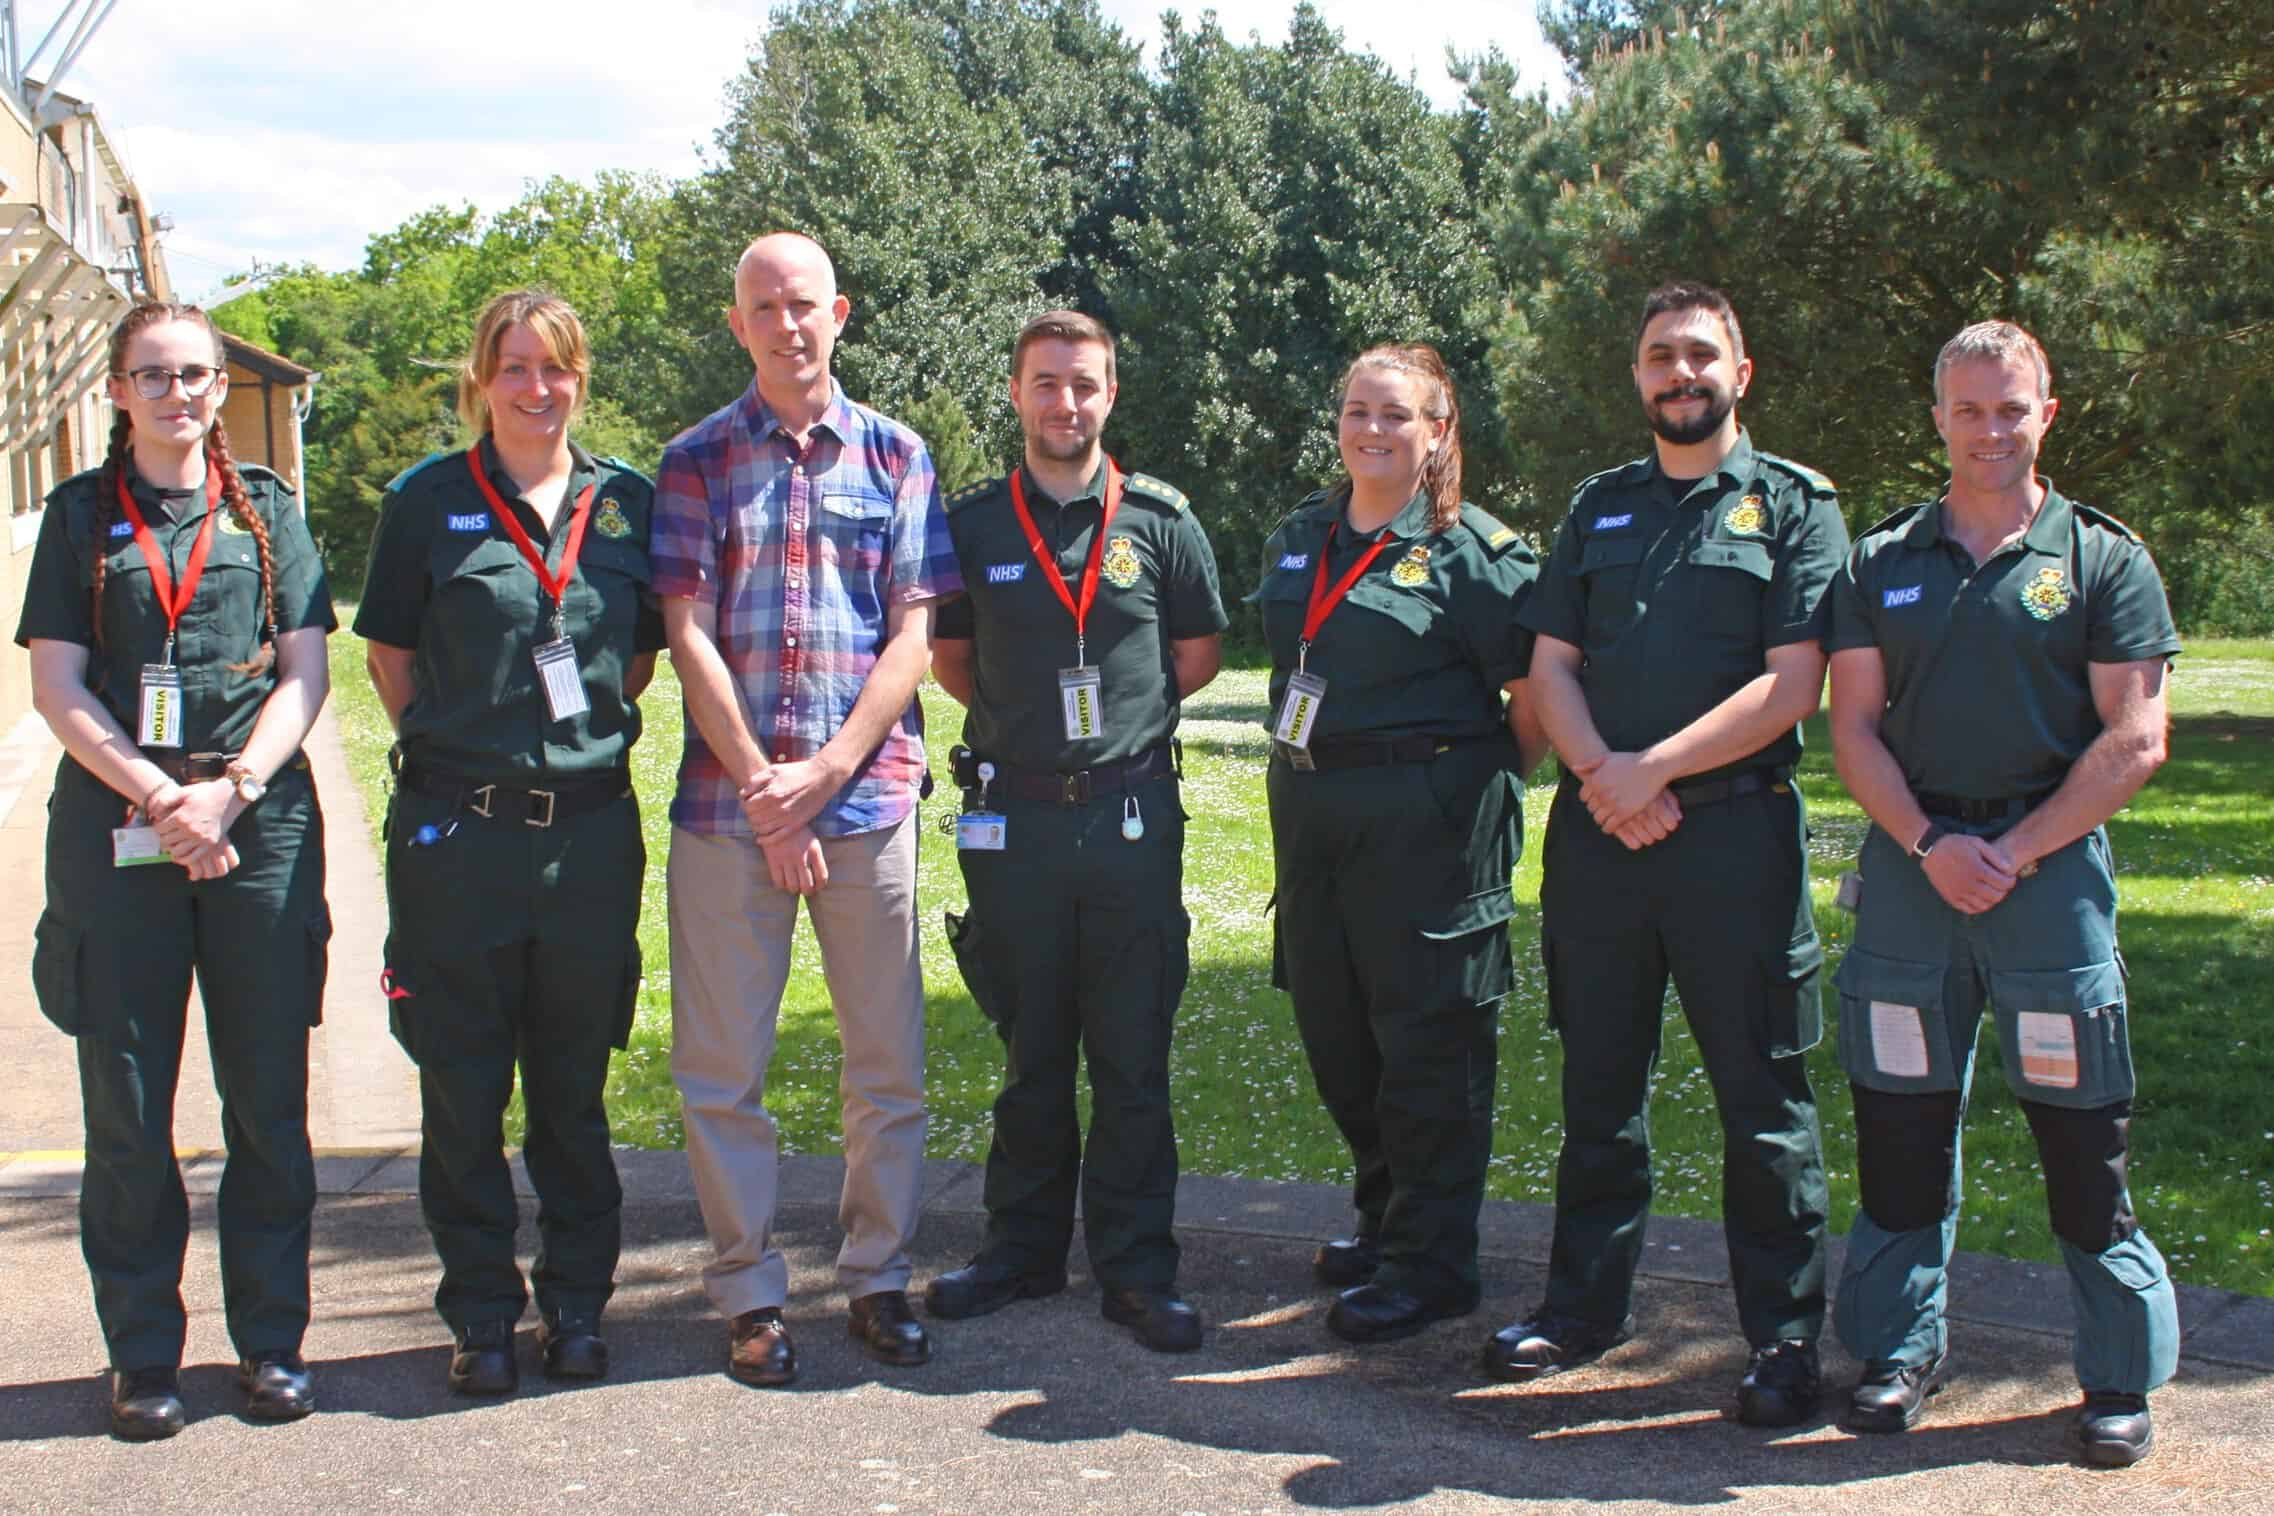 Ben Perrin with South Western Ambulance Service NHS Foundation Trust Copyright SWASFT)